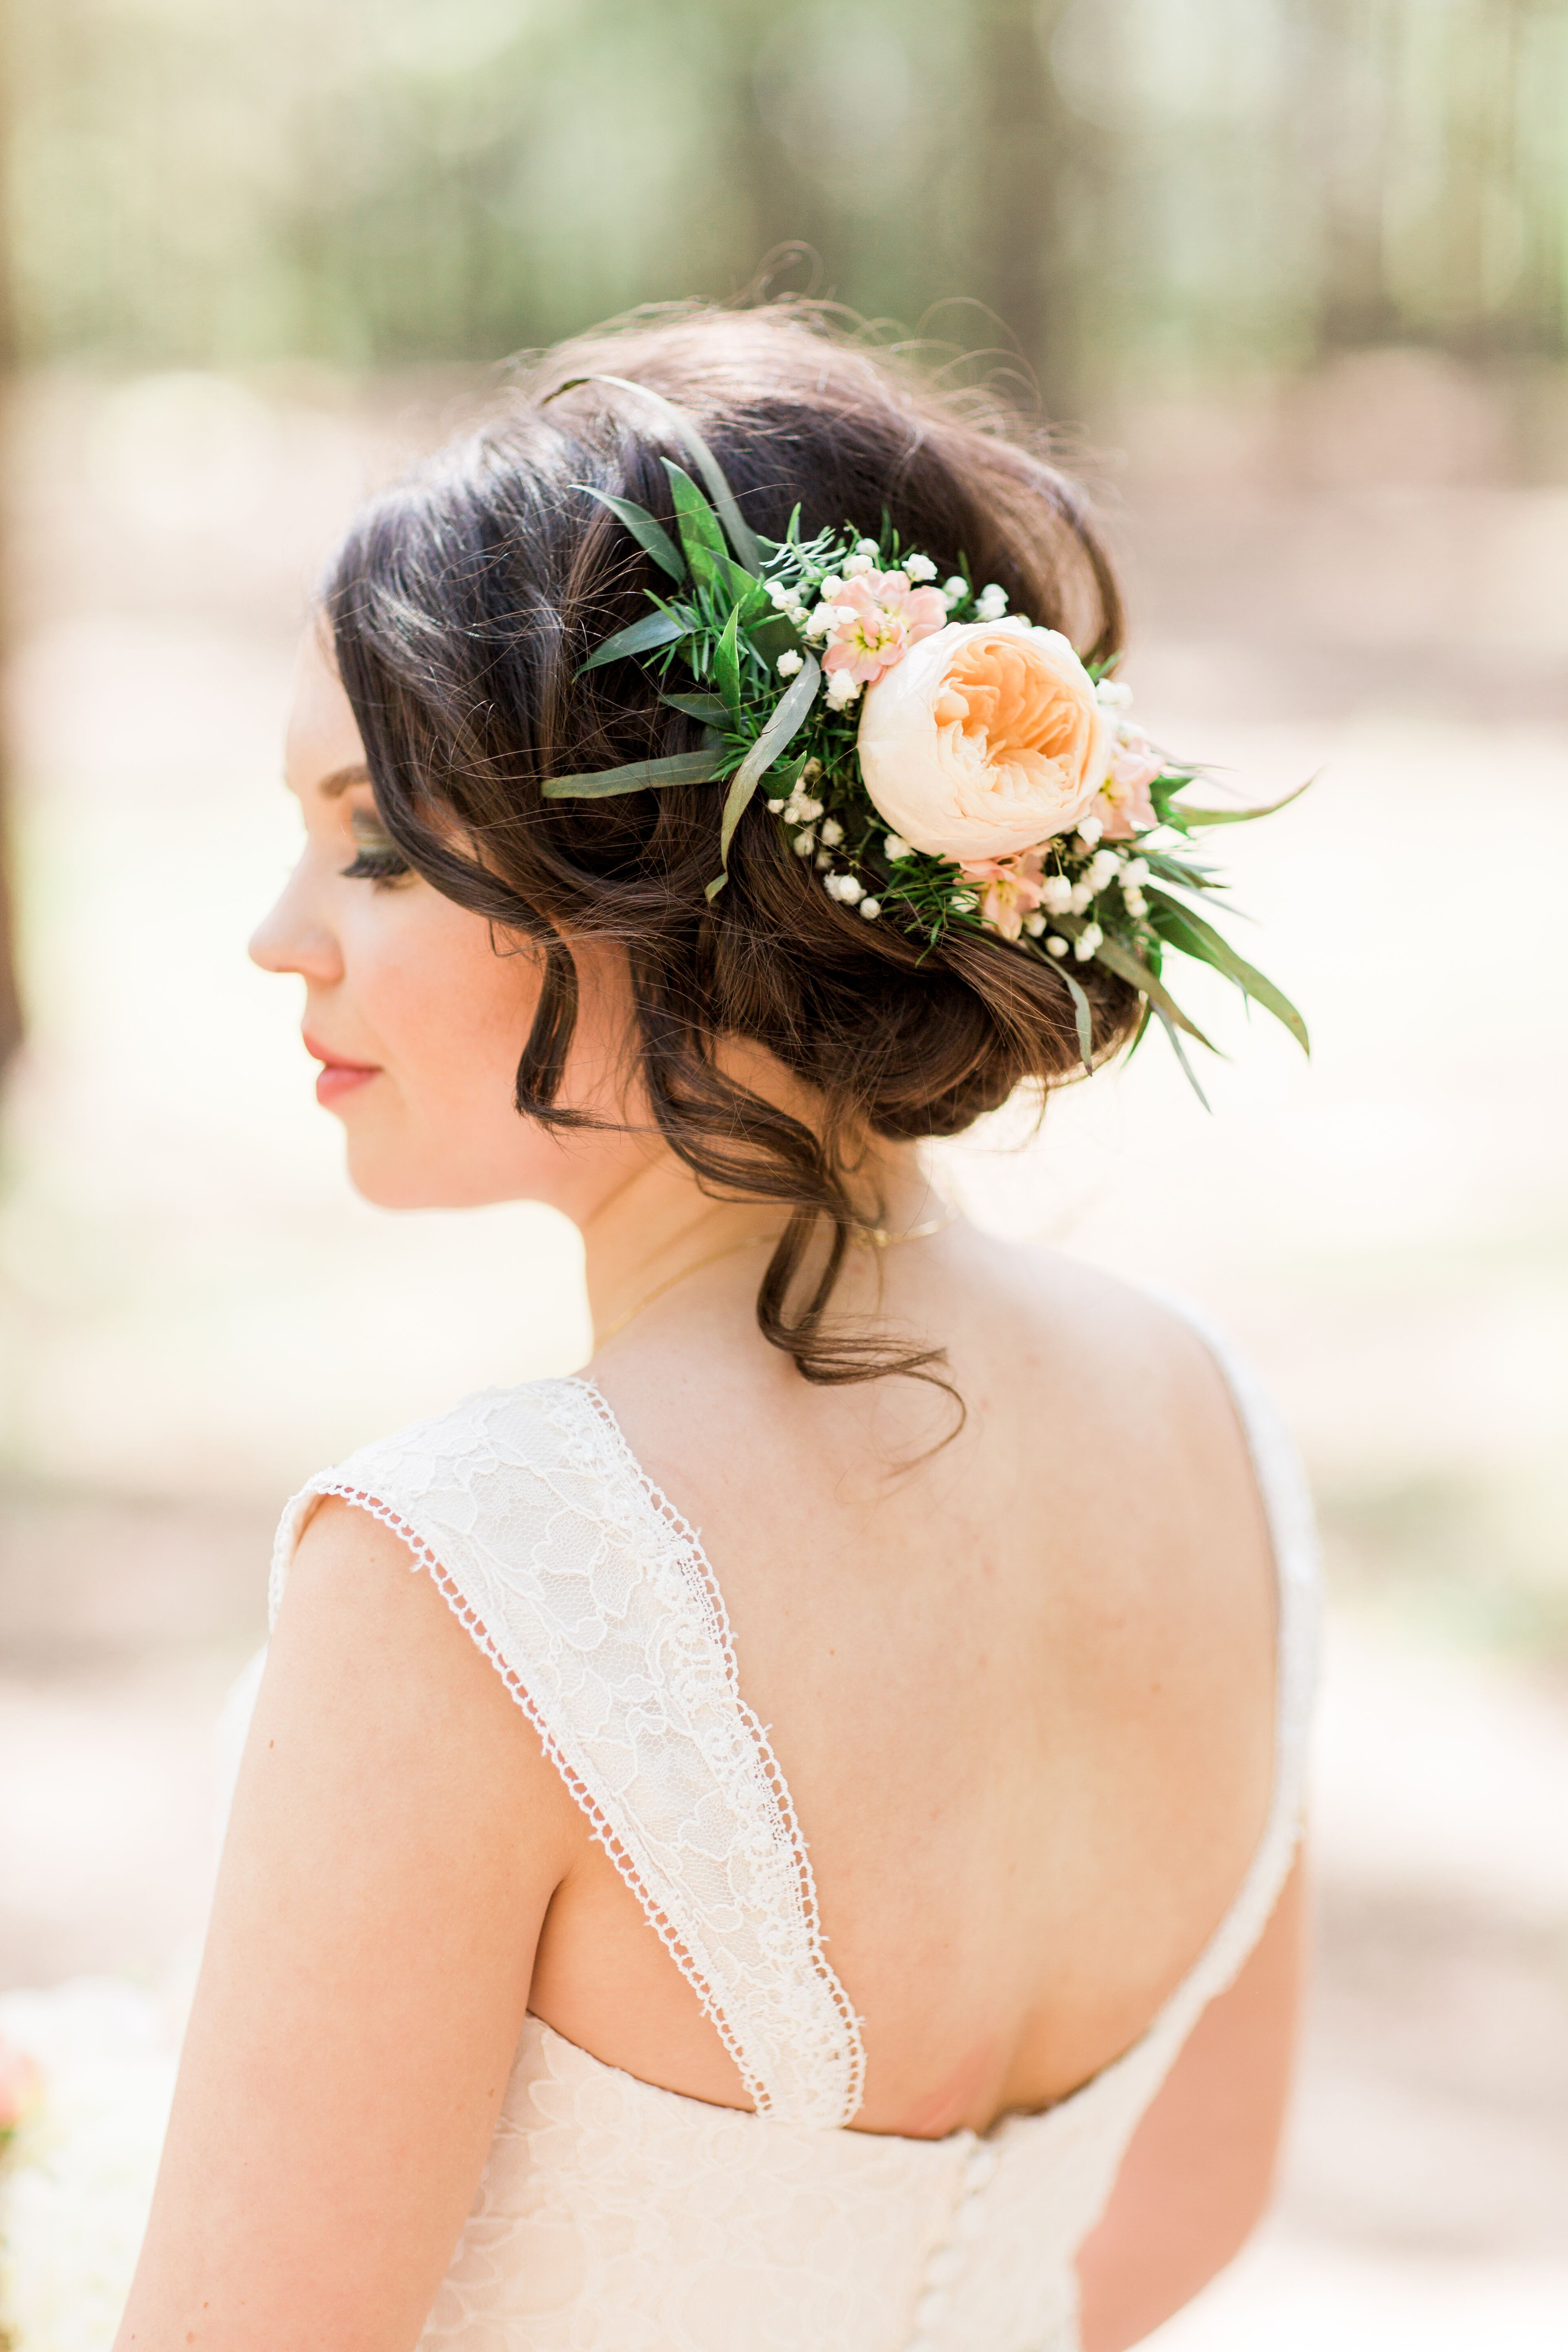 Bridal Up Hairstyle With Flowers And Greenery